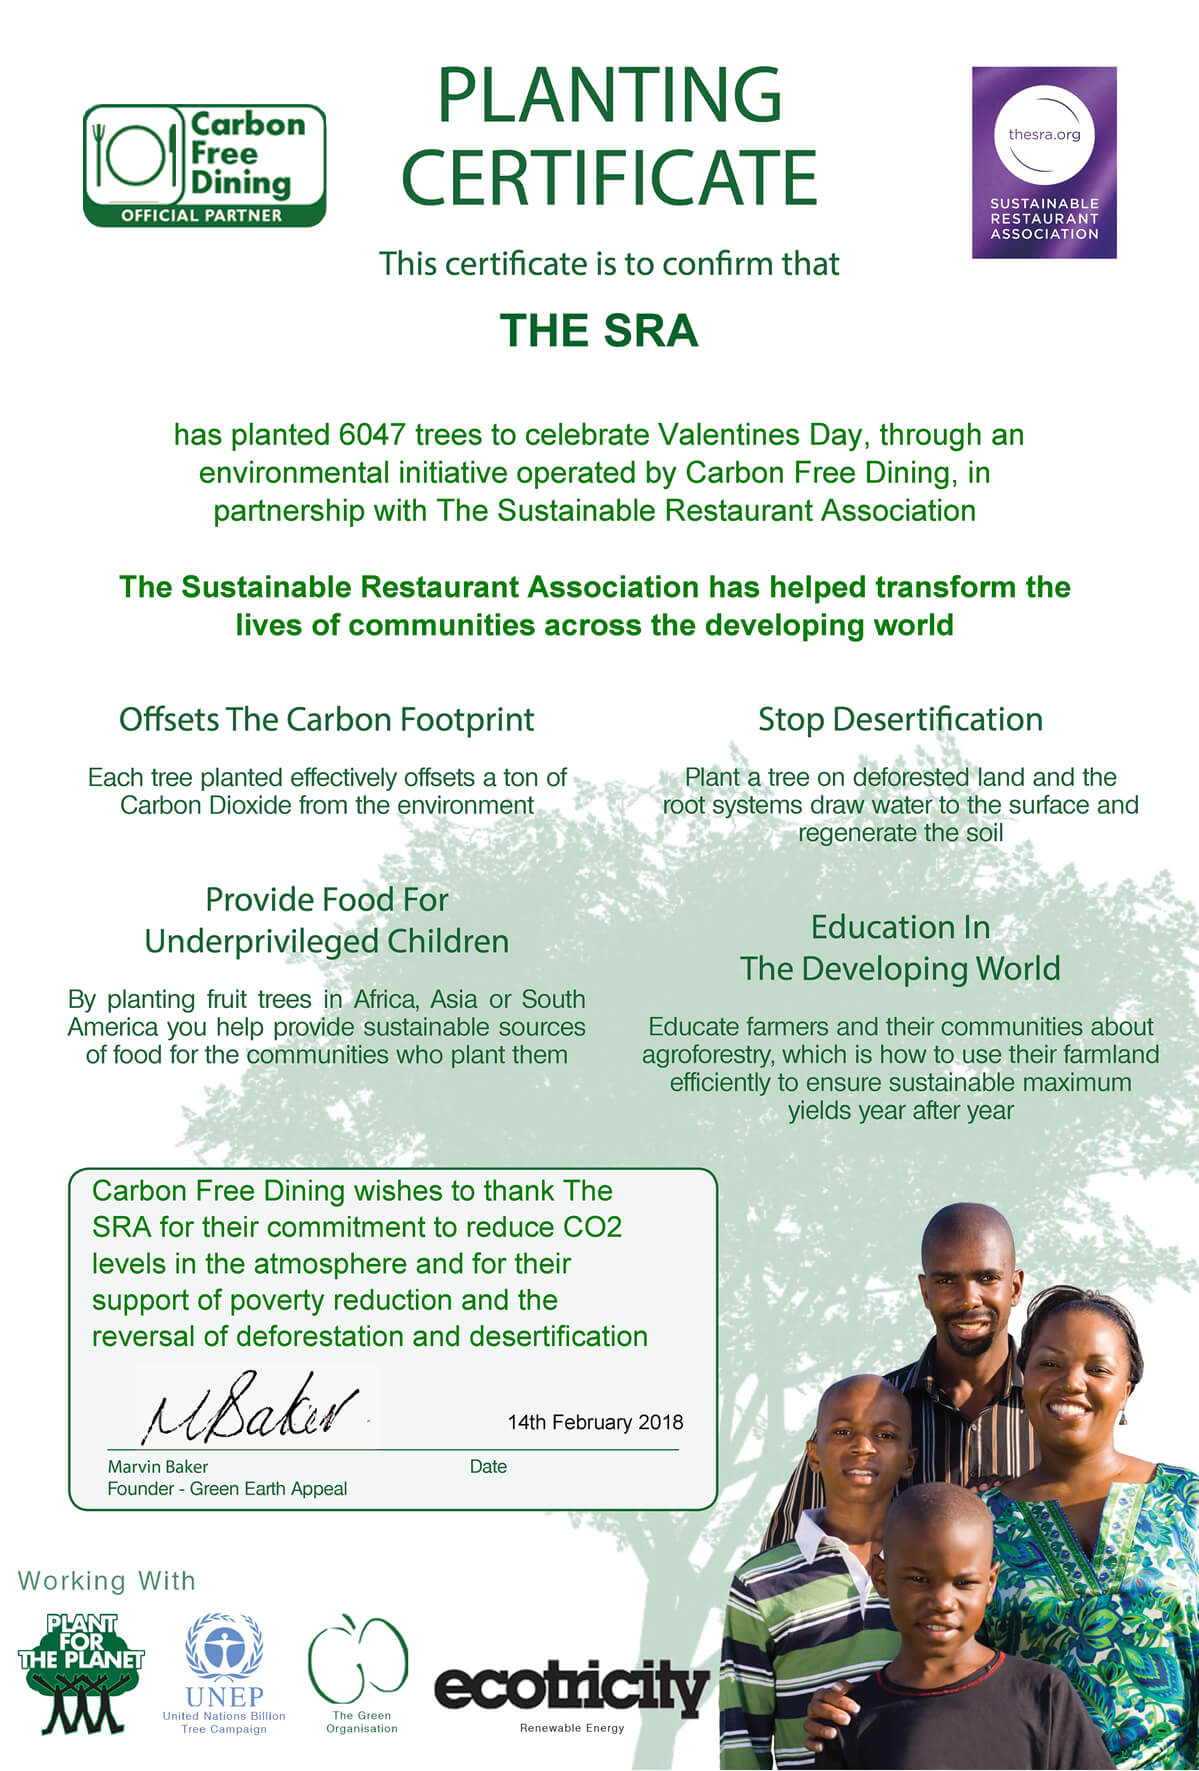 Carbon Free Dining - The Sustainable Restaurant Association Tree Planting Certificate